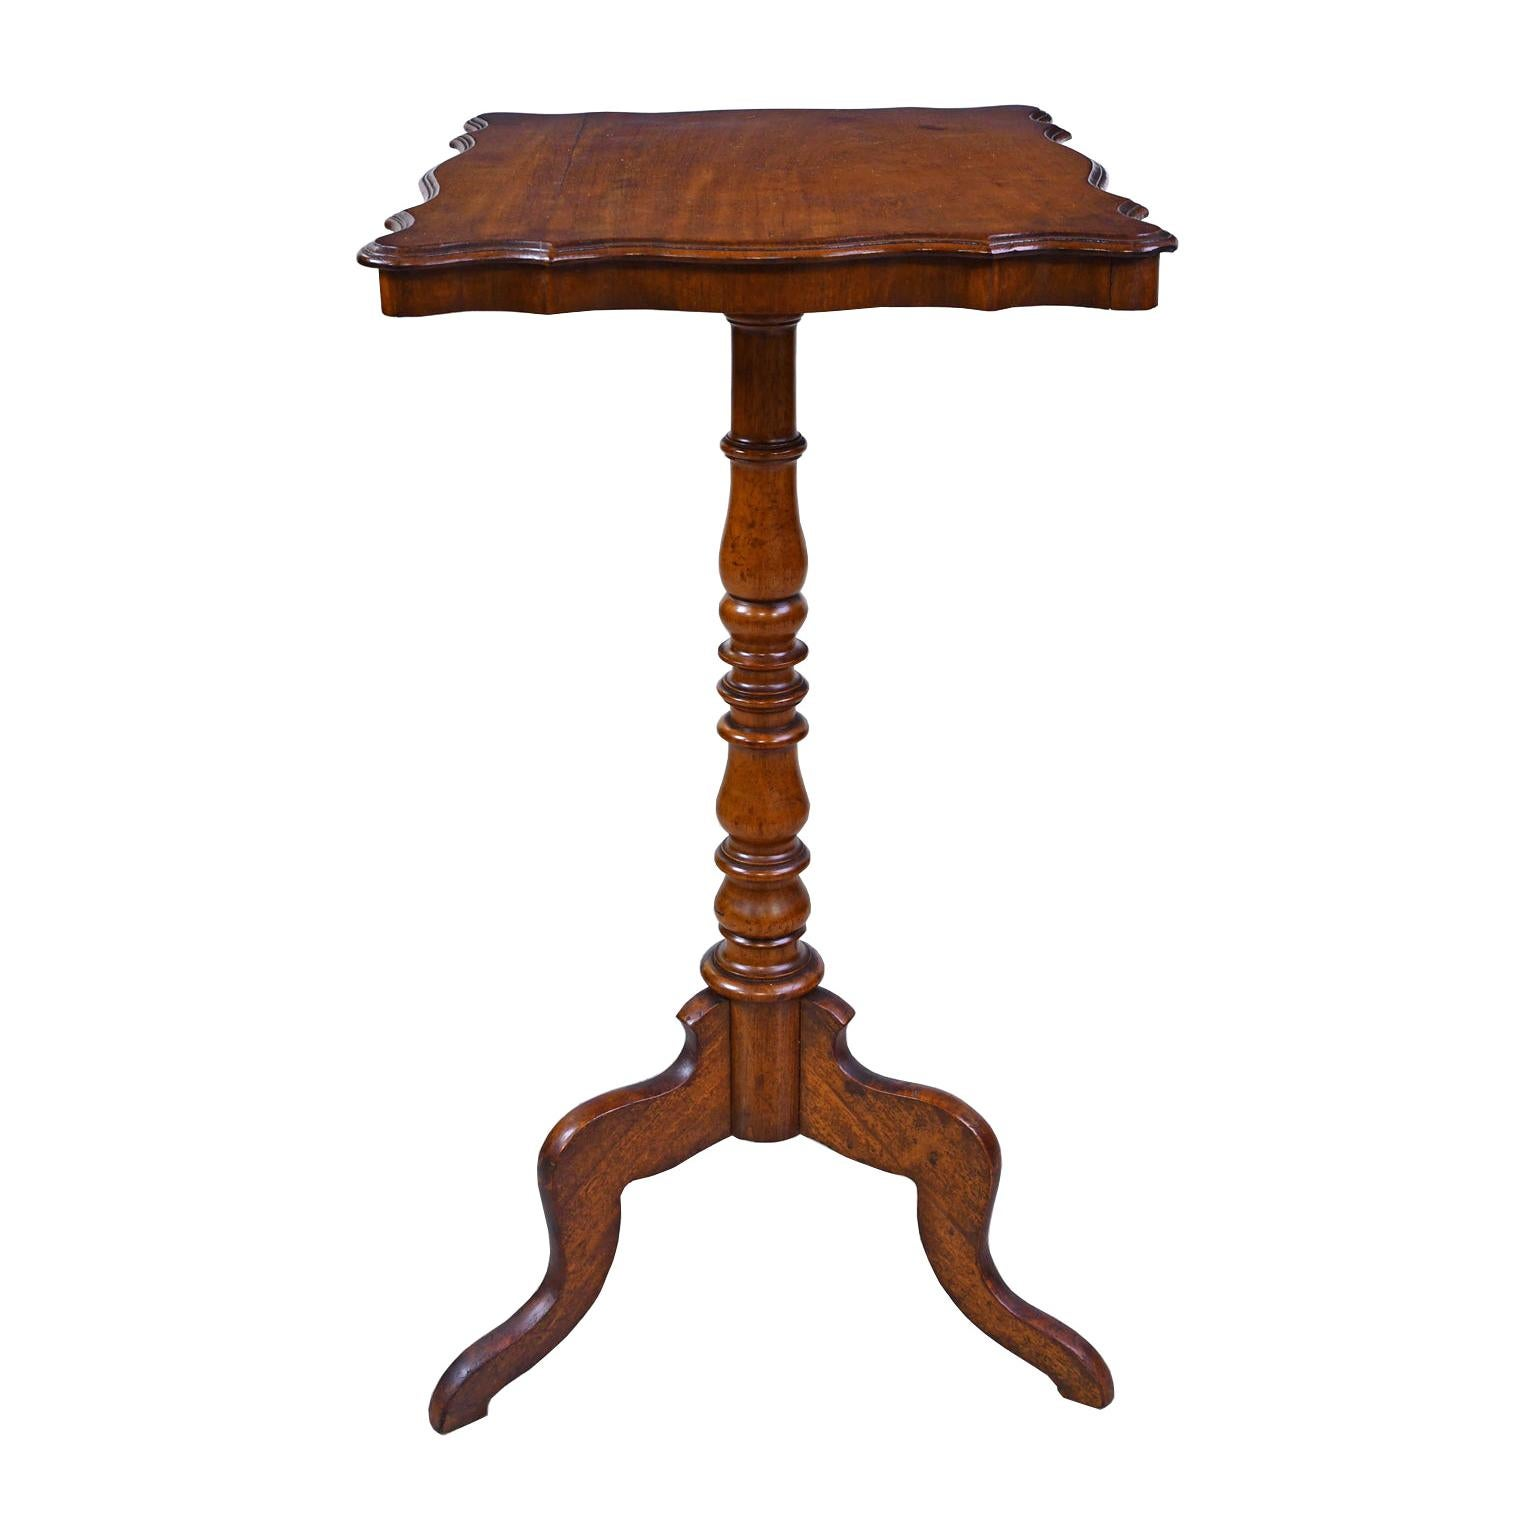 Wine Table/ Candlestand in Walnut with Pedestal on Tripod, European, circa 1825